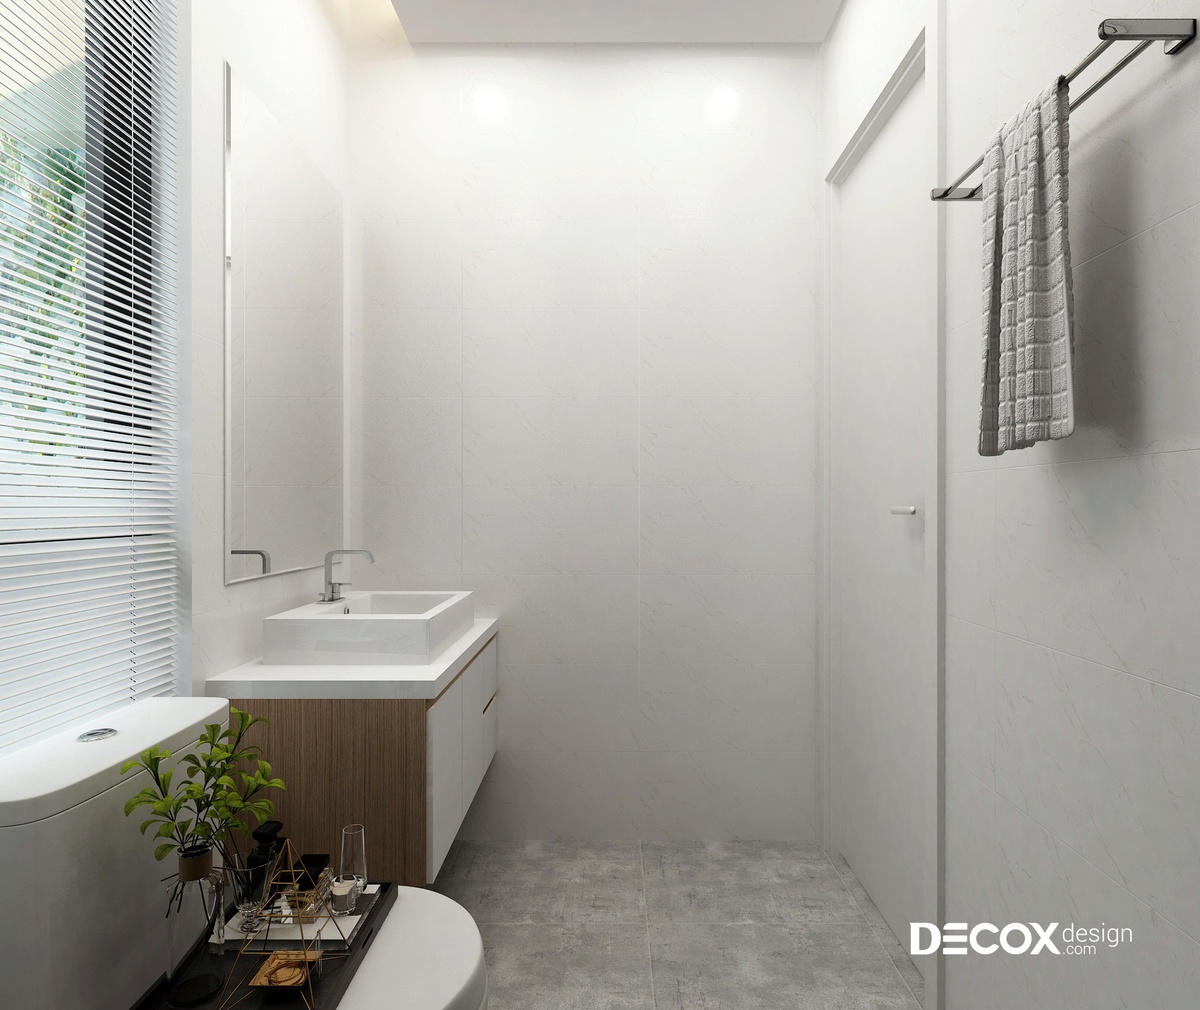 thiet-ke-noi-that-palm-heights-120m2-m190005-wc-chung-22-decox-design